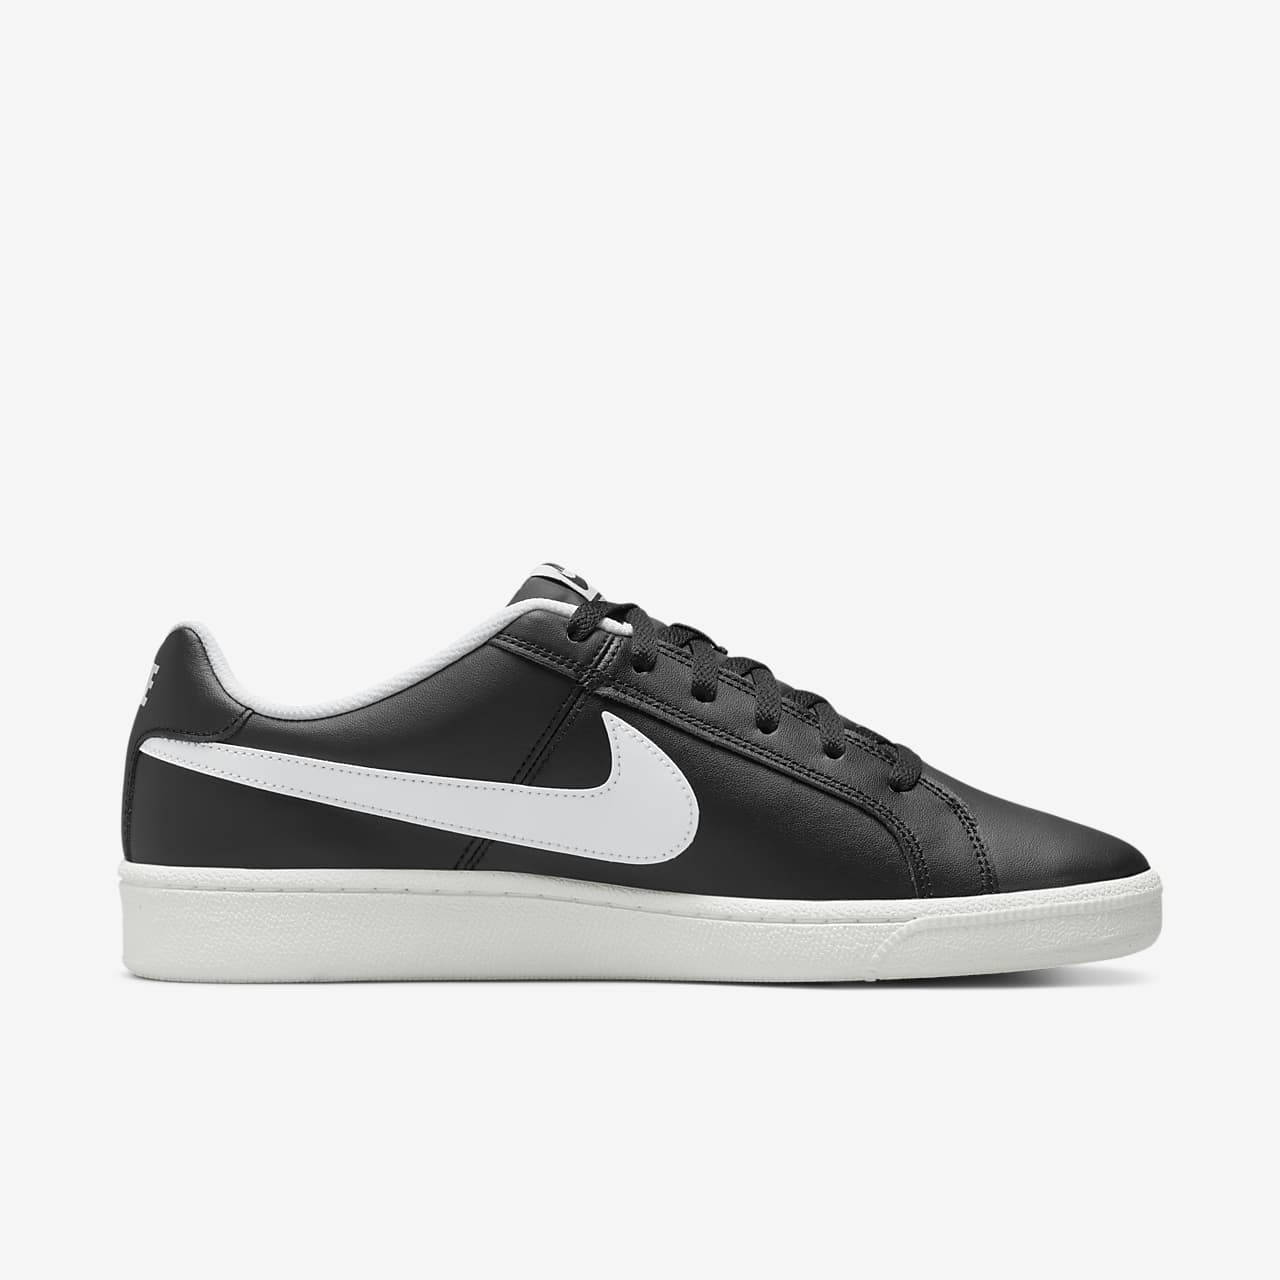 reputable site 3c75c abb39 Chaussure Nike Court Royale pour Homme. Nike.com BE